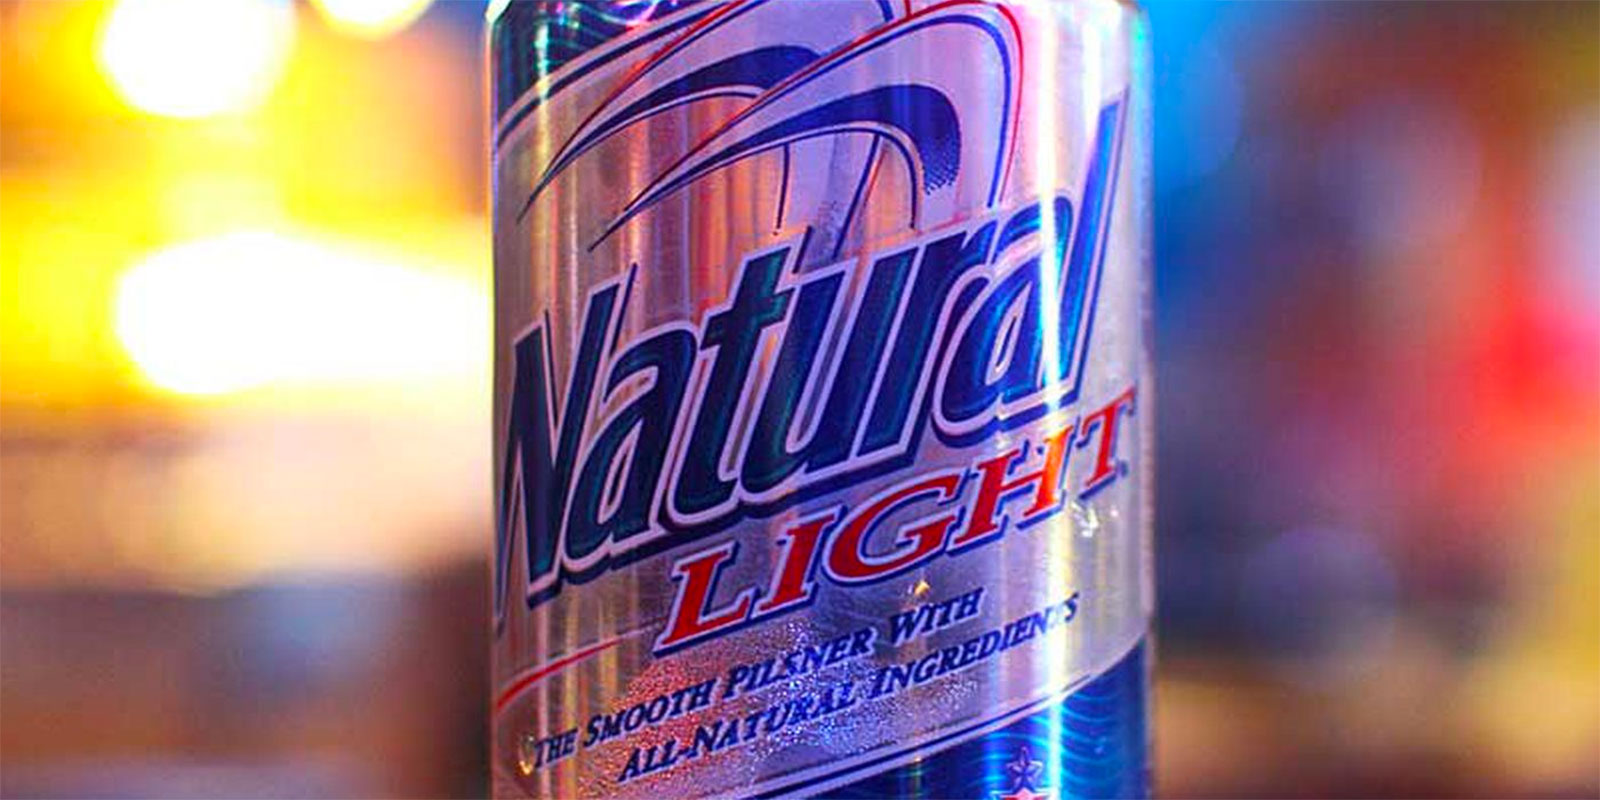 Natty The Fatty 11 things you didn't know about natty light